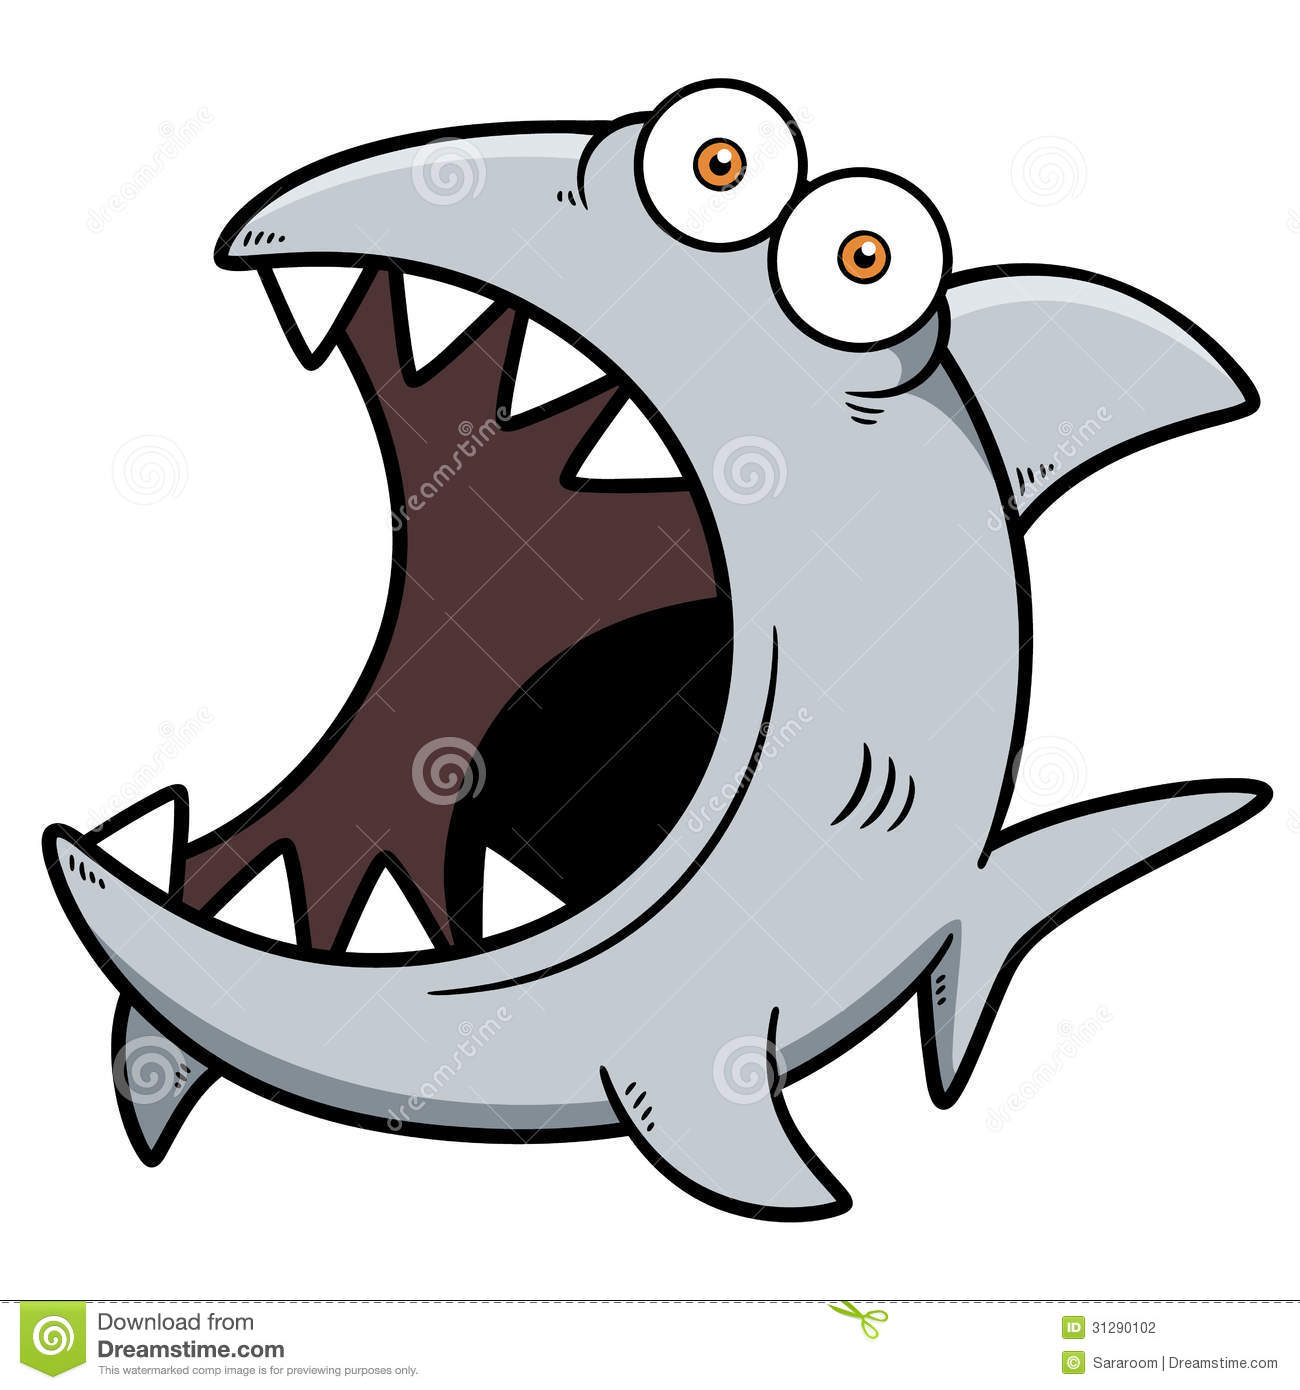 Angry shark clipart - photo#13